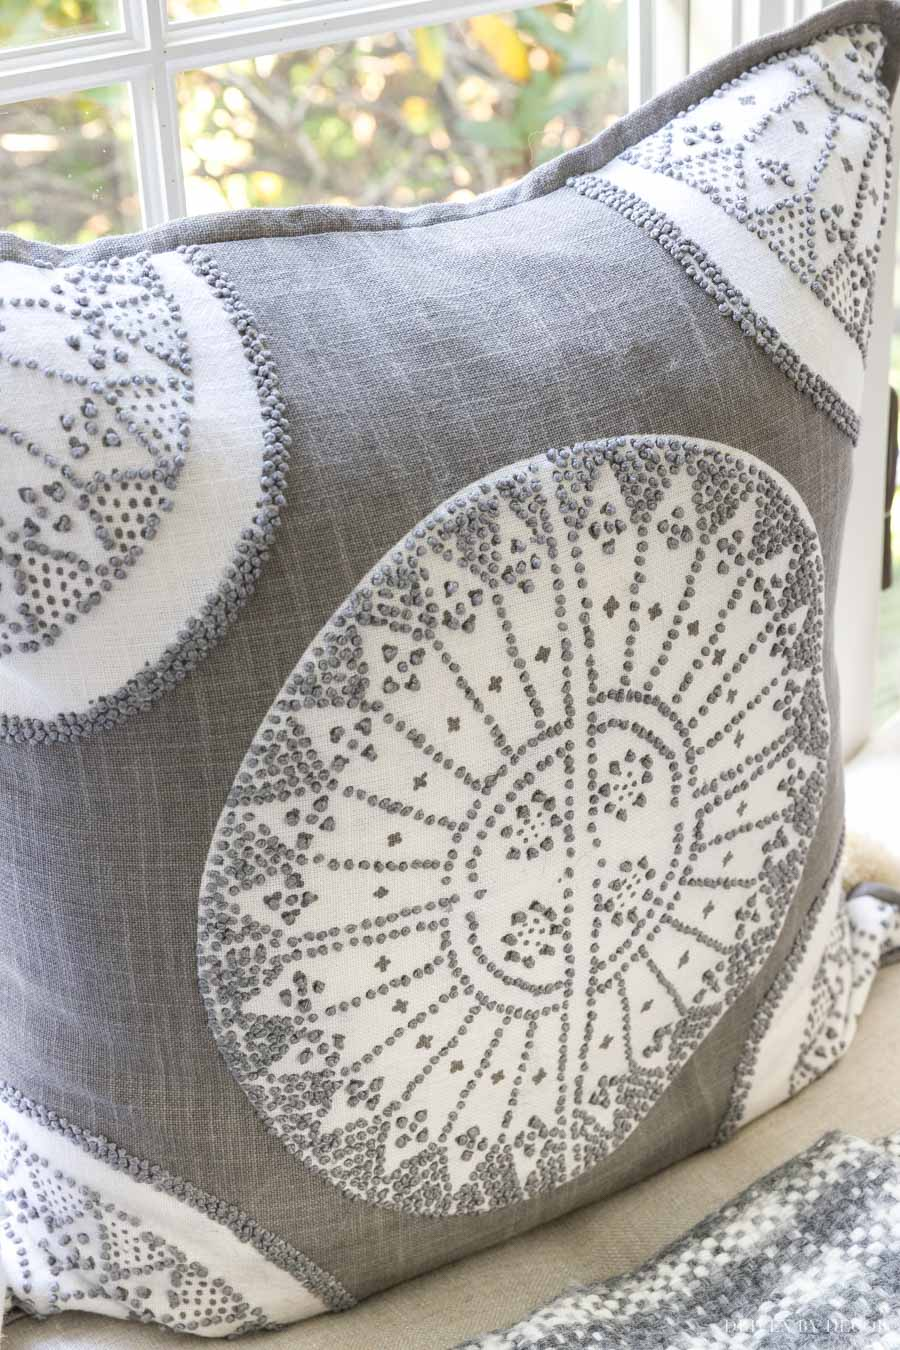 Such a gorgeous gray and white pillow!!